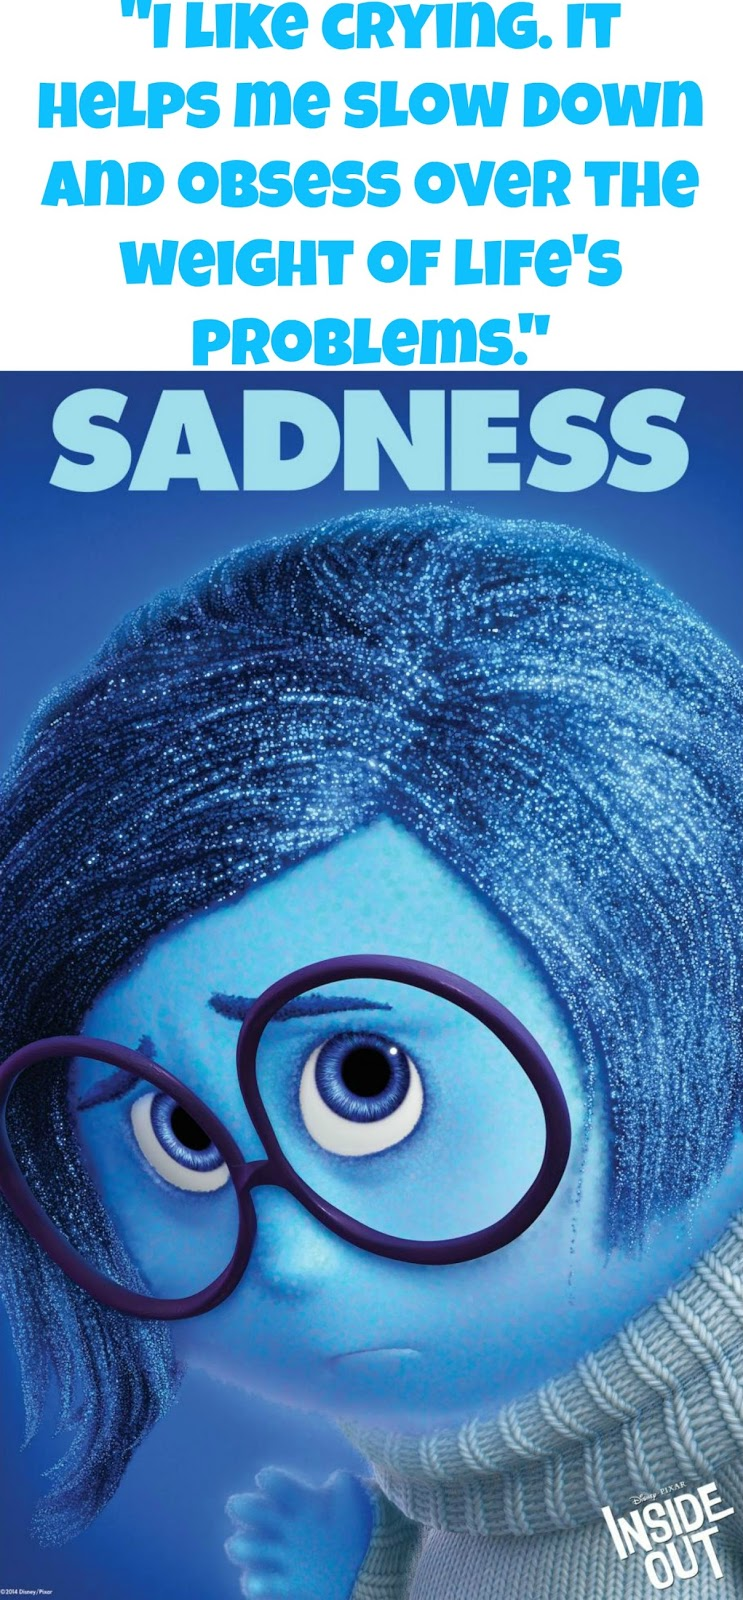 Inside Out Movie Quotes And Activity Pages Insideout Inside Out Characters Quotes 743x1600 Wallpaper Teahub Io